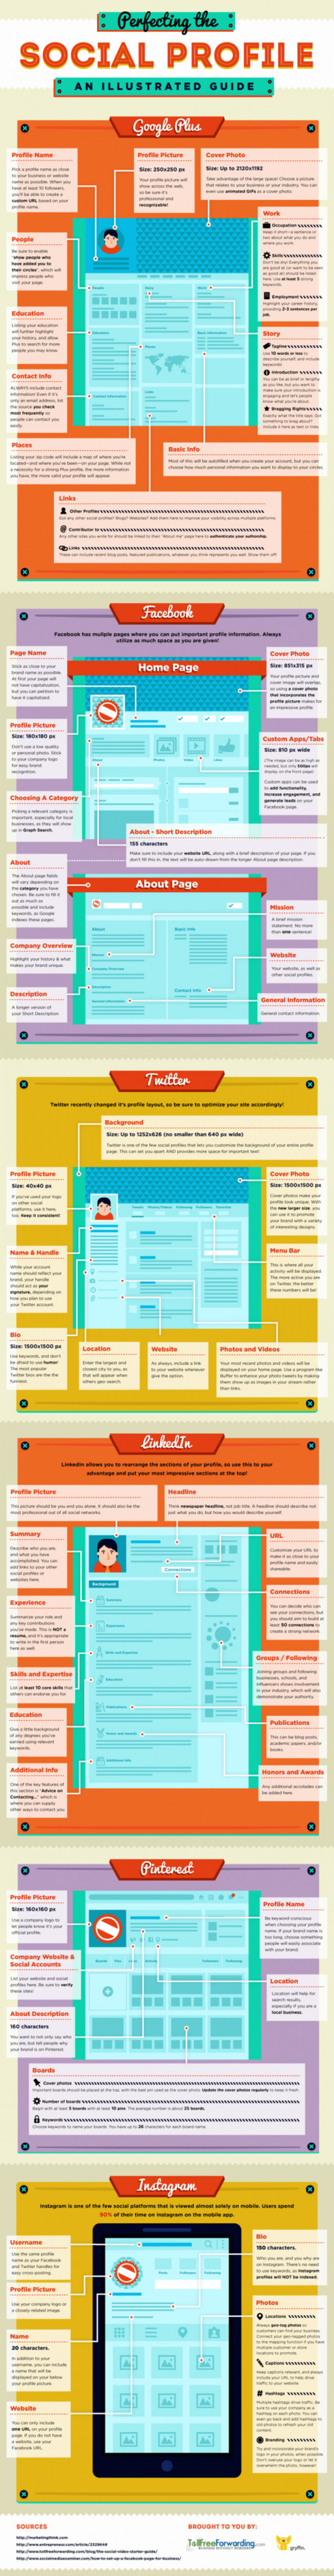 Optimize your social media profiles in a few steps with this infographic